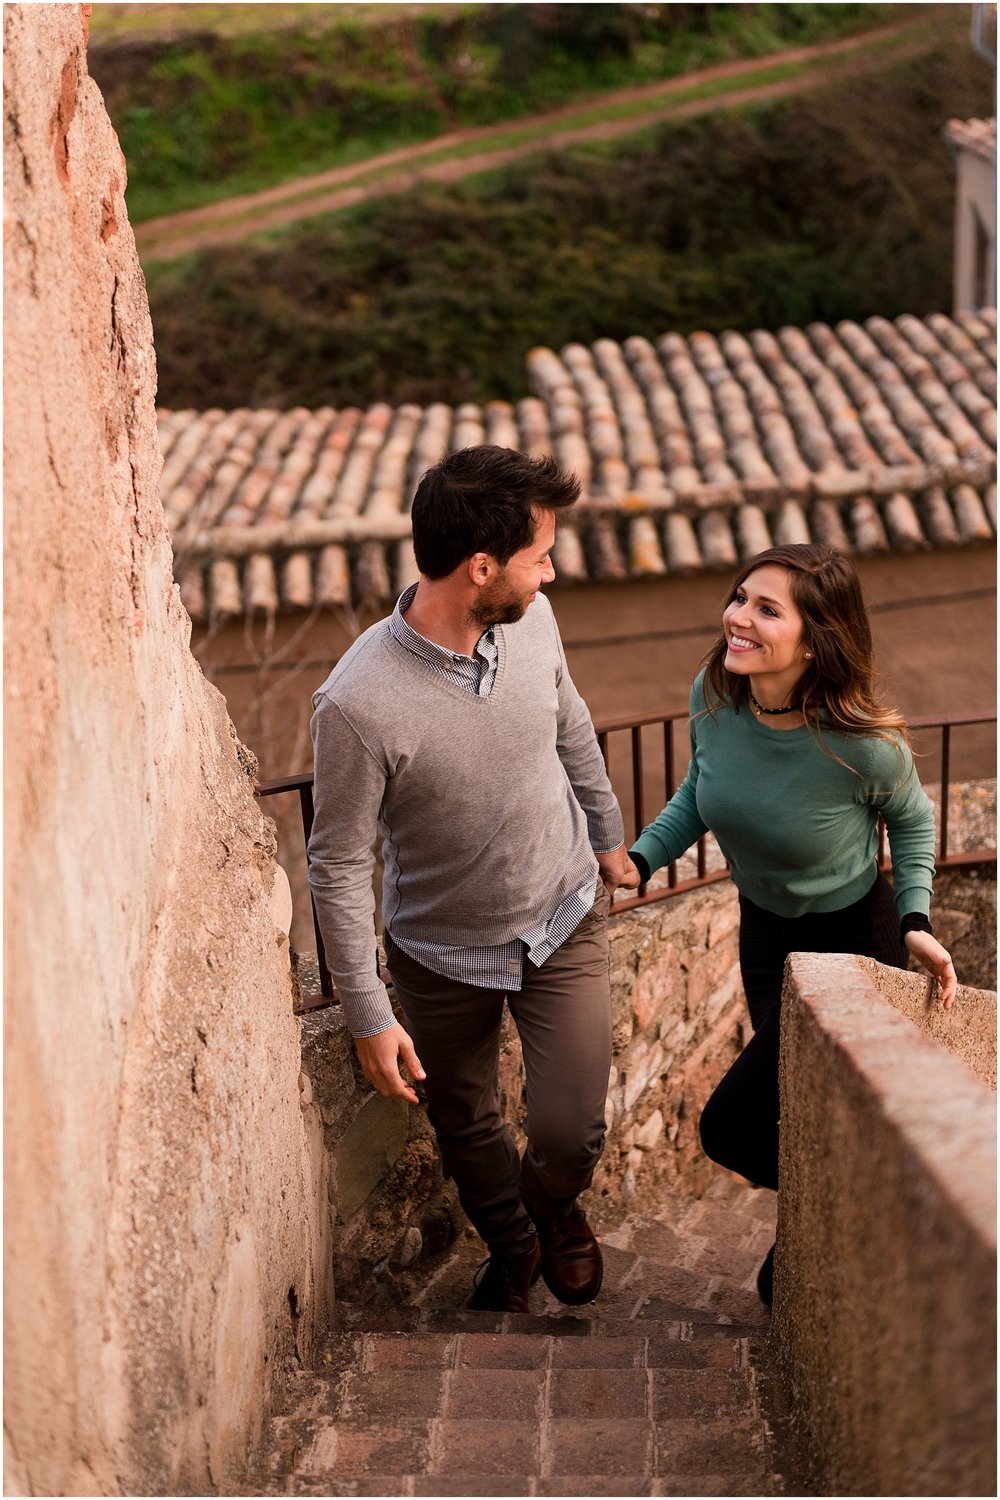 Hannah Leigh Photography Barcelona Spain Engagement Session_3293.jpg